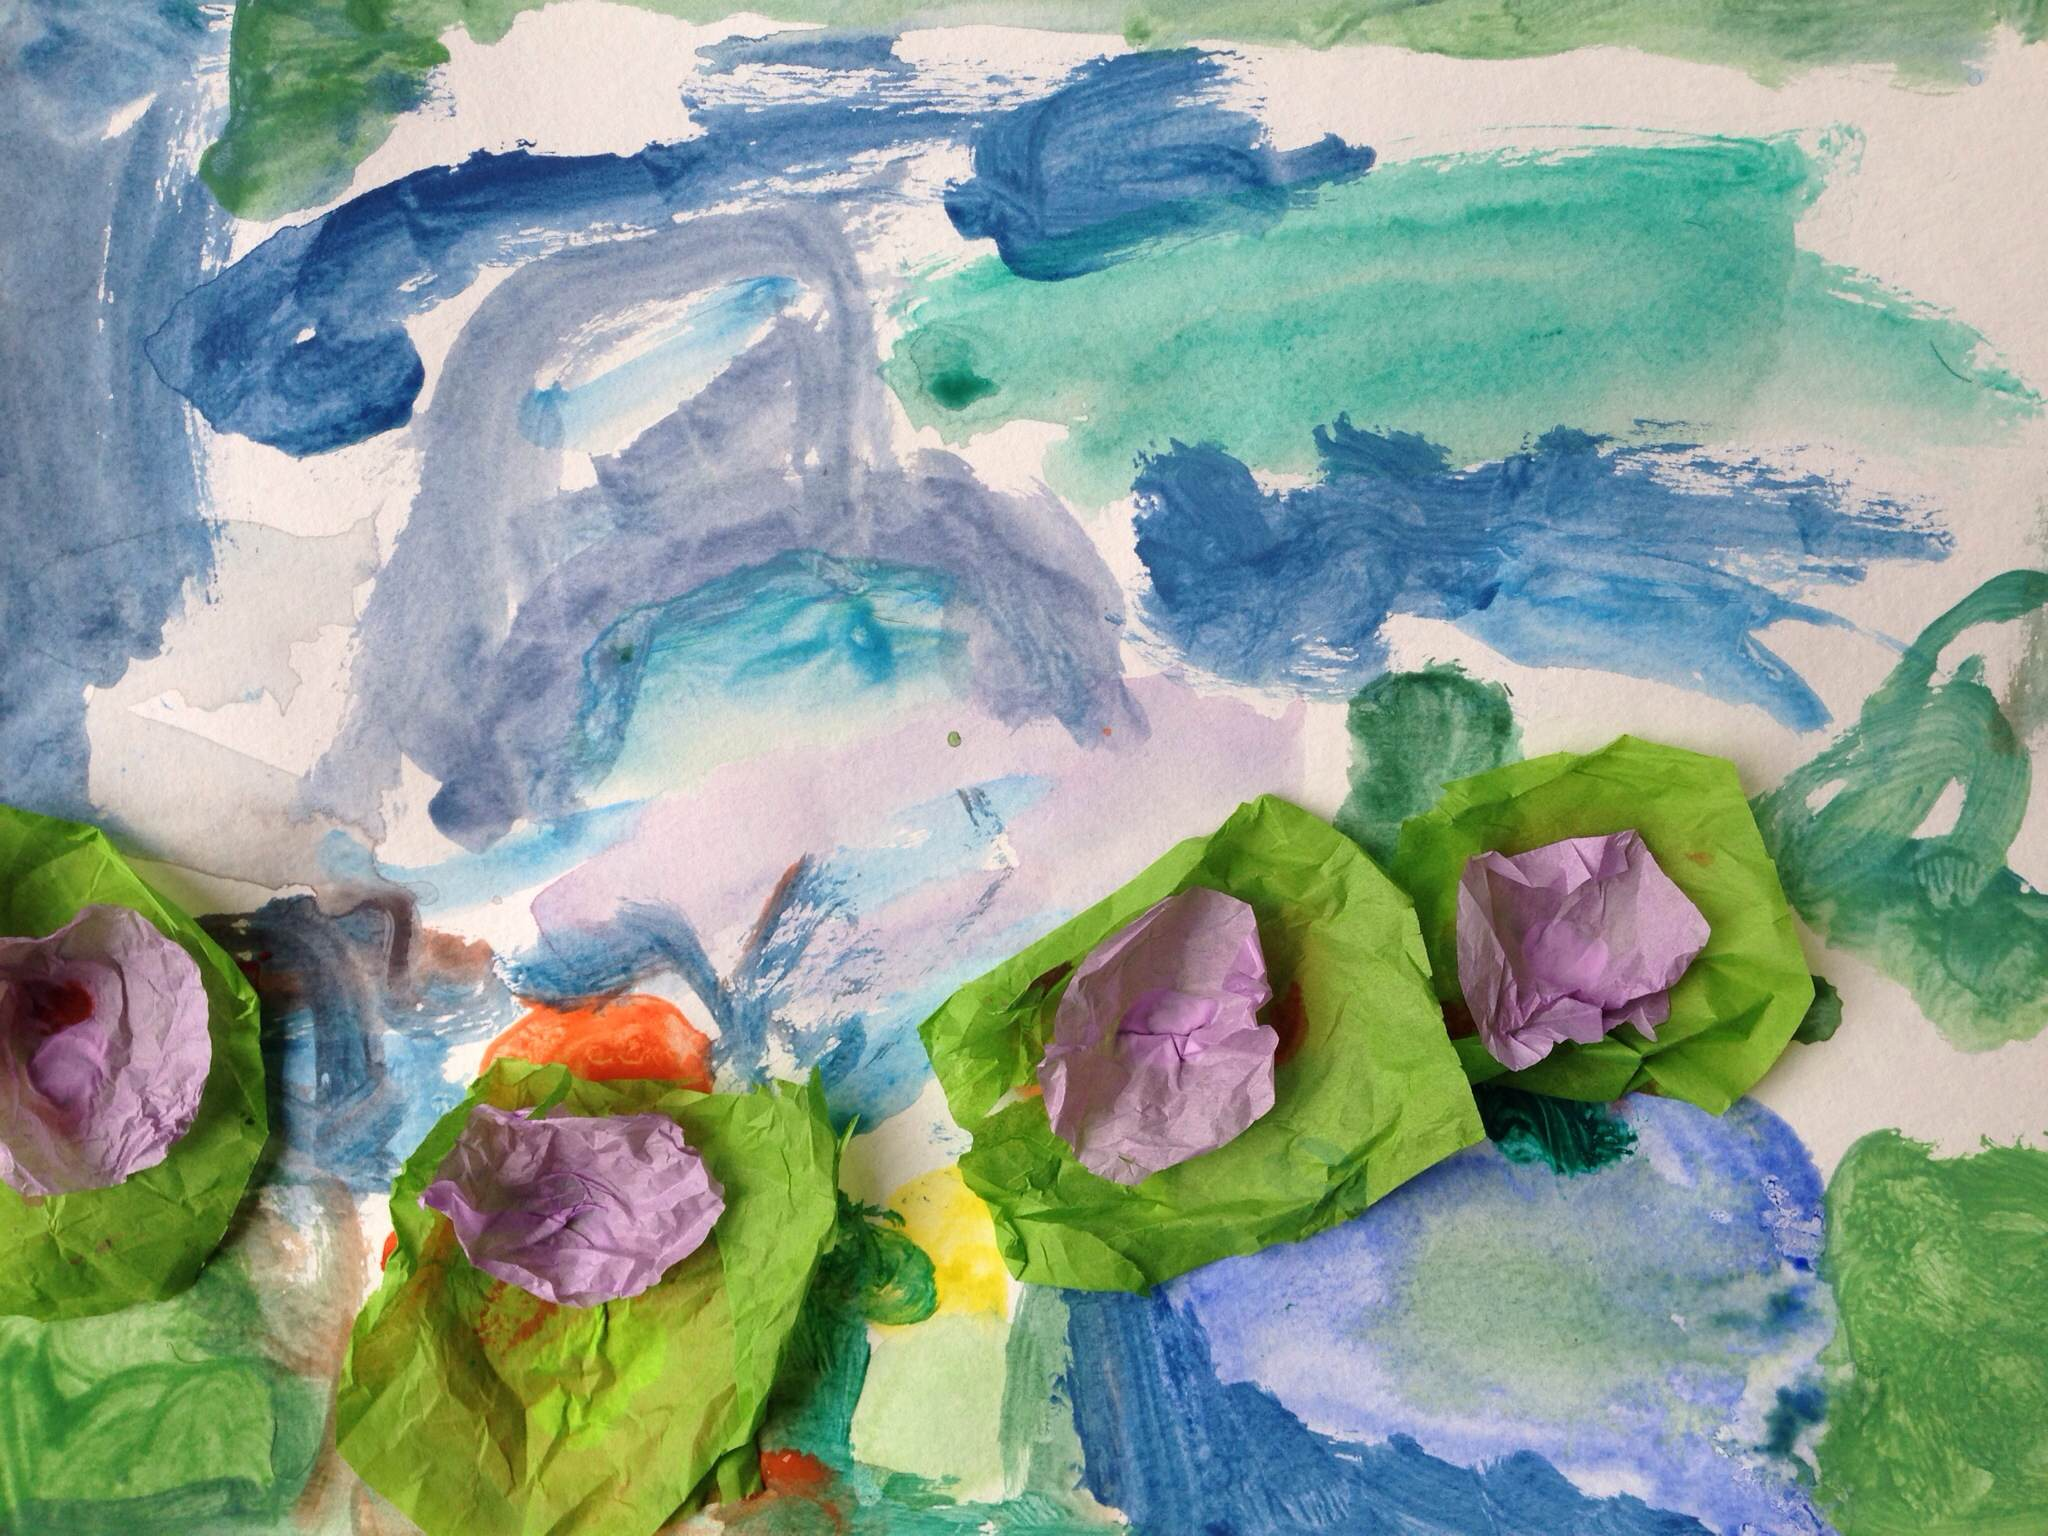 monet water lillies inspired art